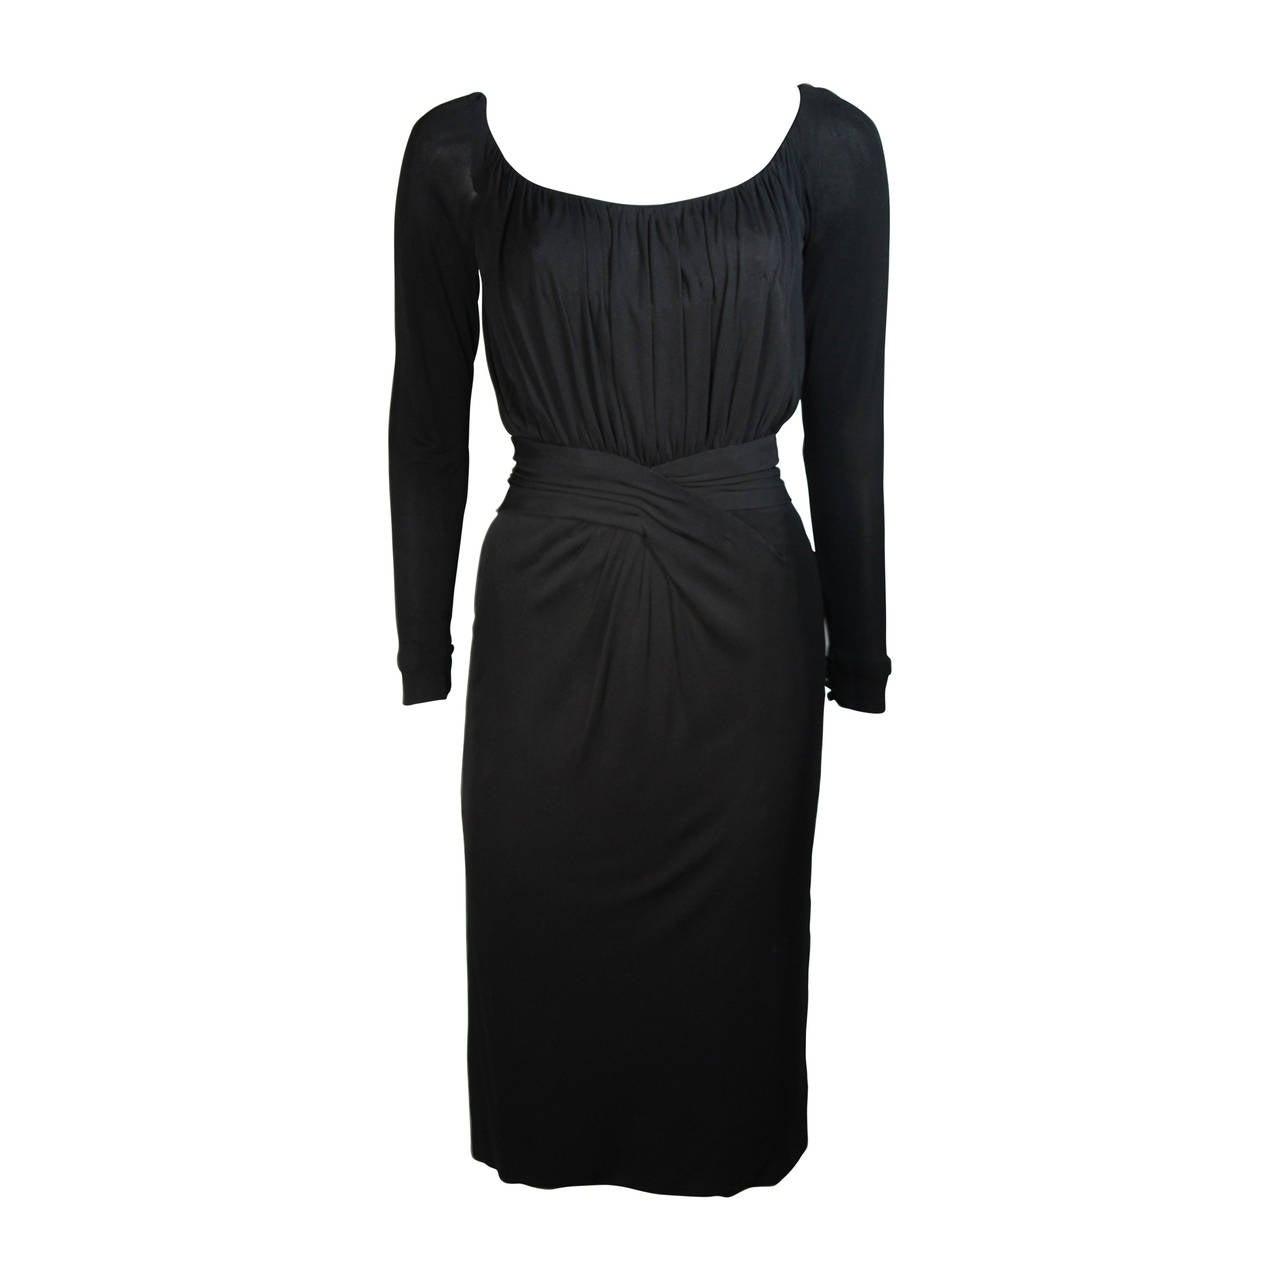 489fa9ea5ed Ceil Chapman Black Silk Crepe Cocktail Dress with Gathers Size 4-6 For Sale